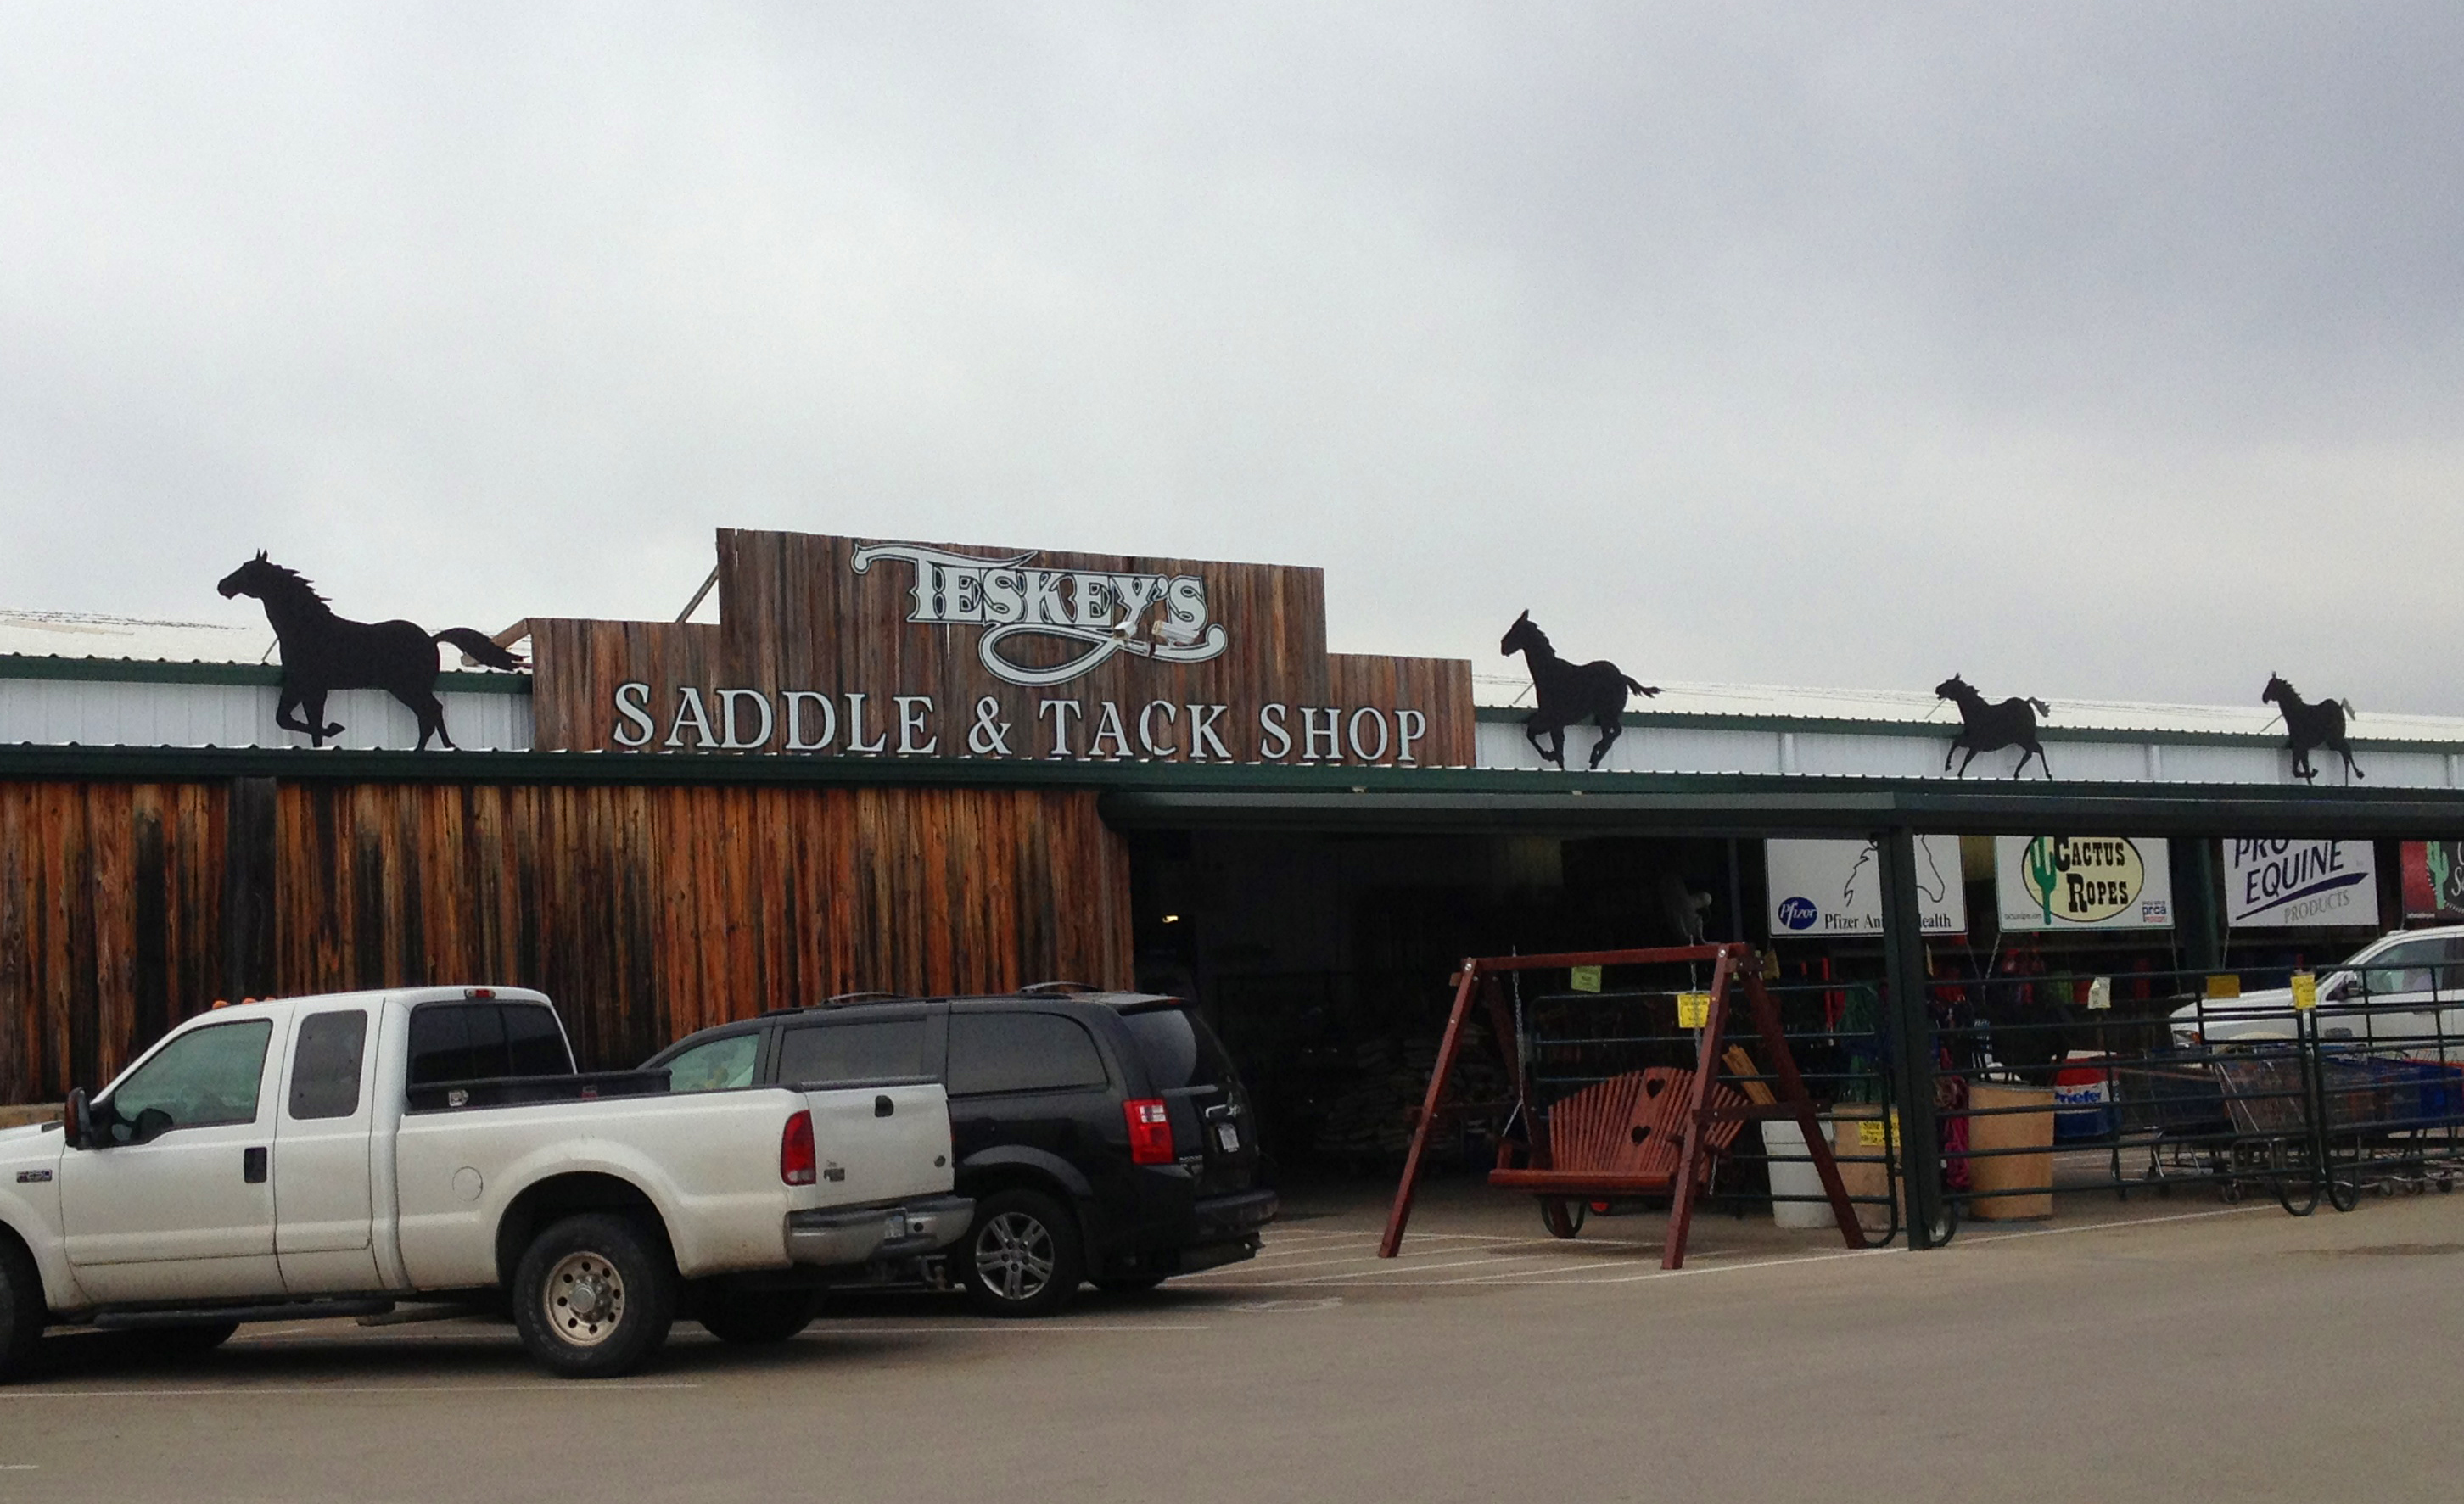 781be7a26c71 Teskey's Saddle Shop is internationally known for its incredible selection  of Western saddles and equipment.